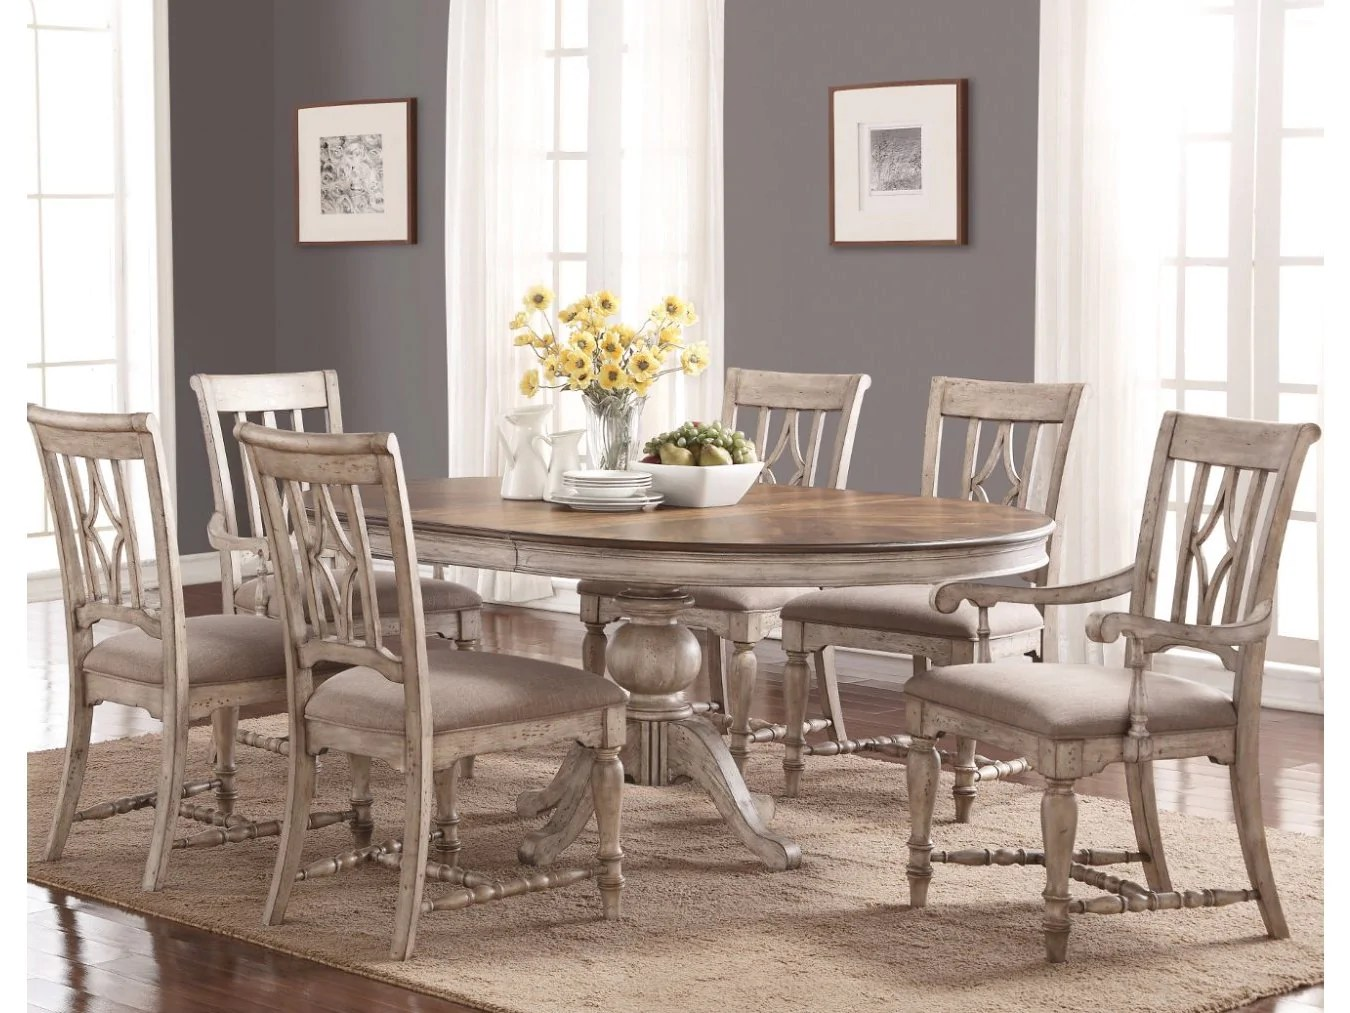 Plymouth Furniture Clearance Plymouth 7 Piece Dinette By Flexsteel Barrow Fine Furniture